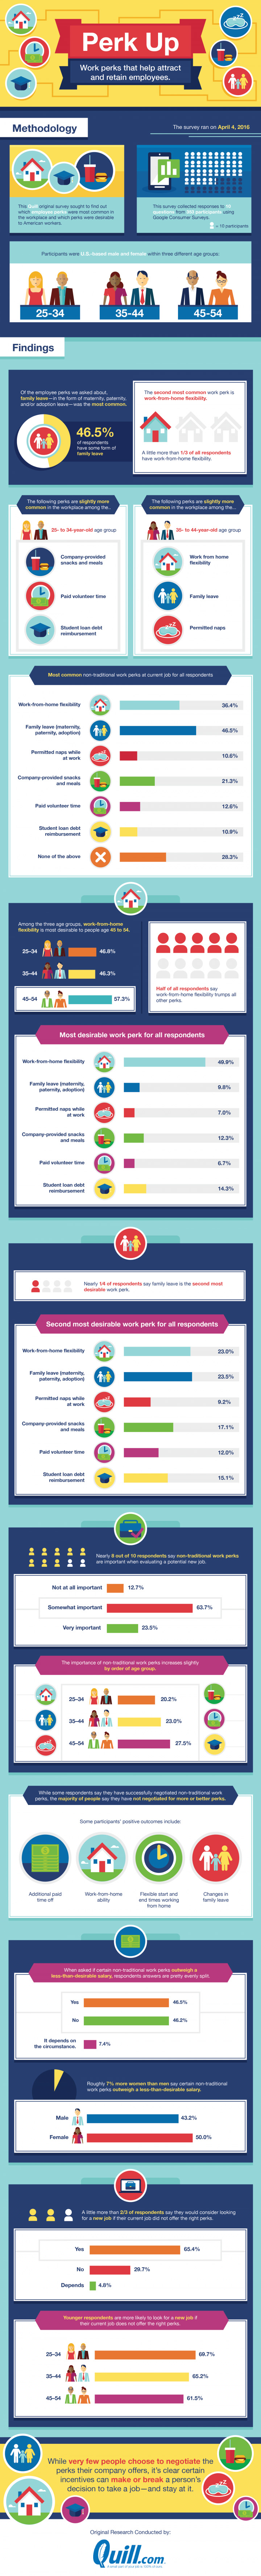 Work Perks For Employees [Infographic]